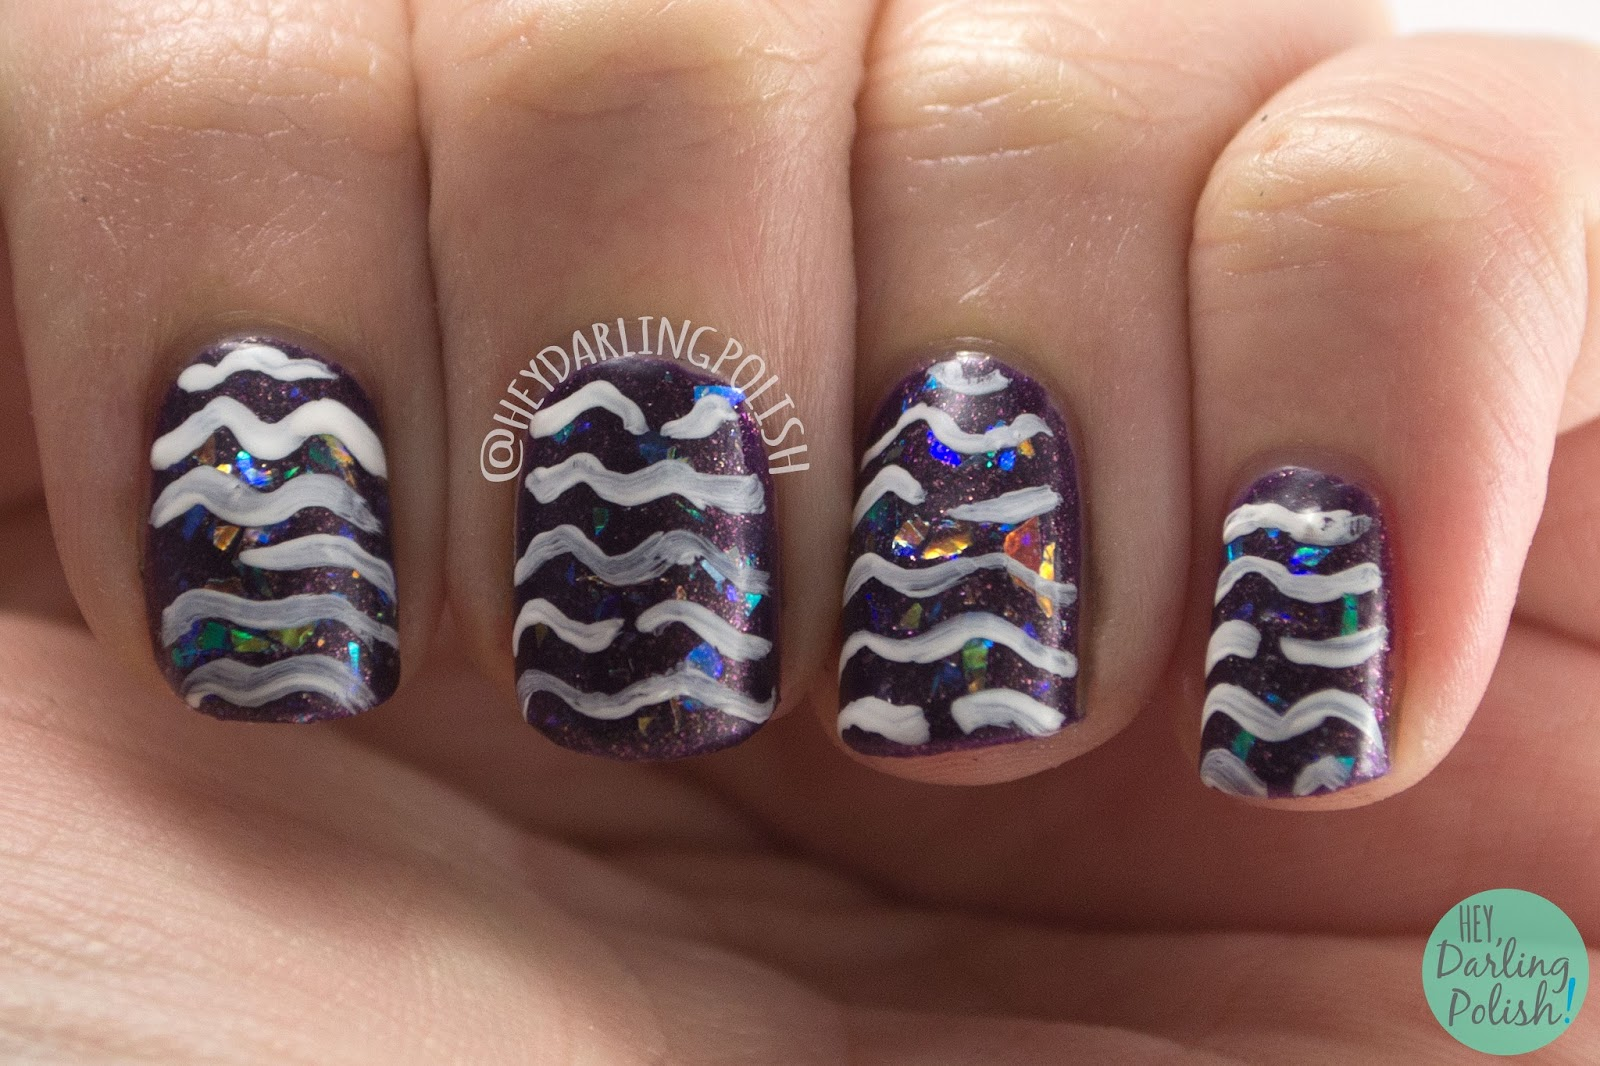 nails, nail art, nail polish, flakies, pattern, purple, hey darling polish, 2015 cnt 31 day challenge